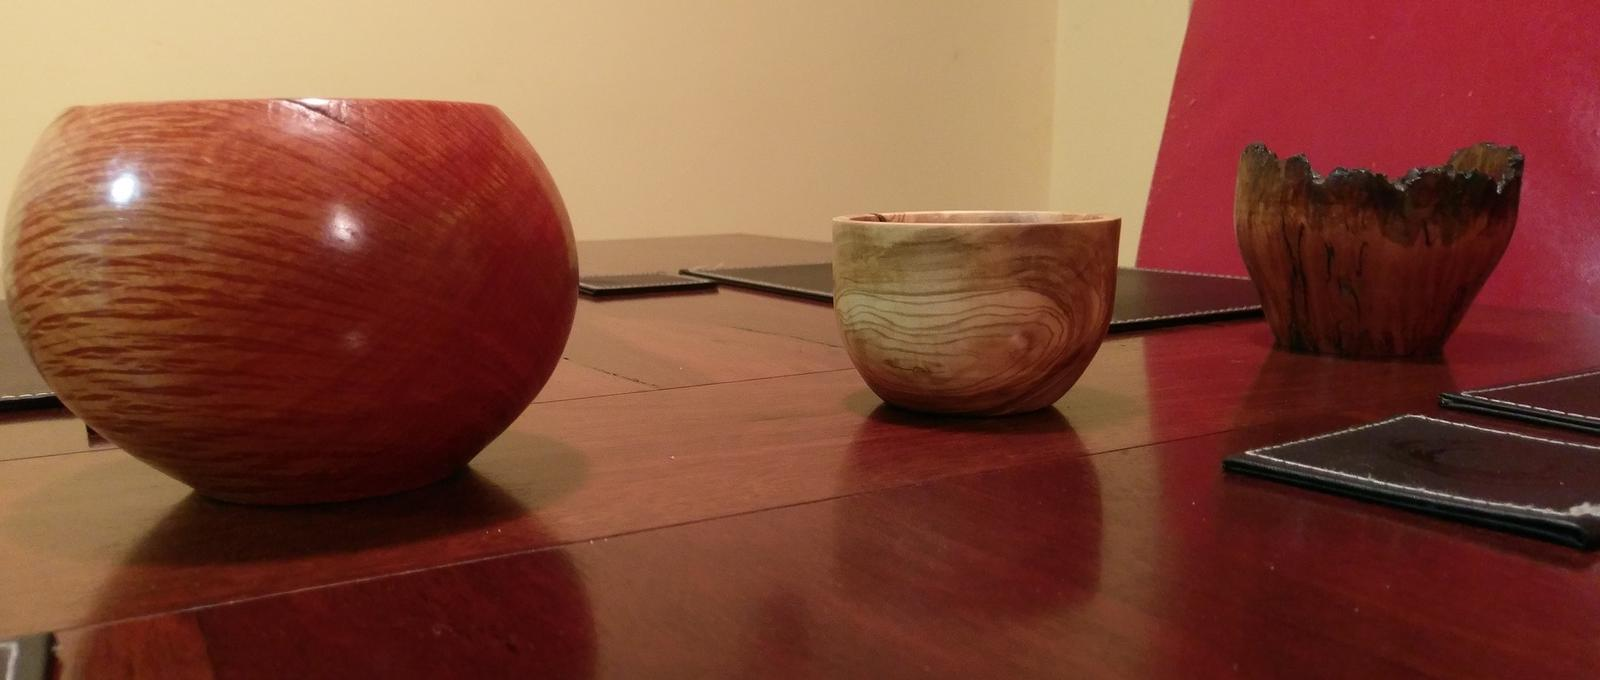 series of turned bowls